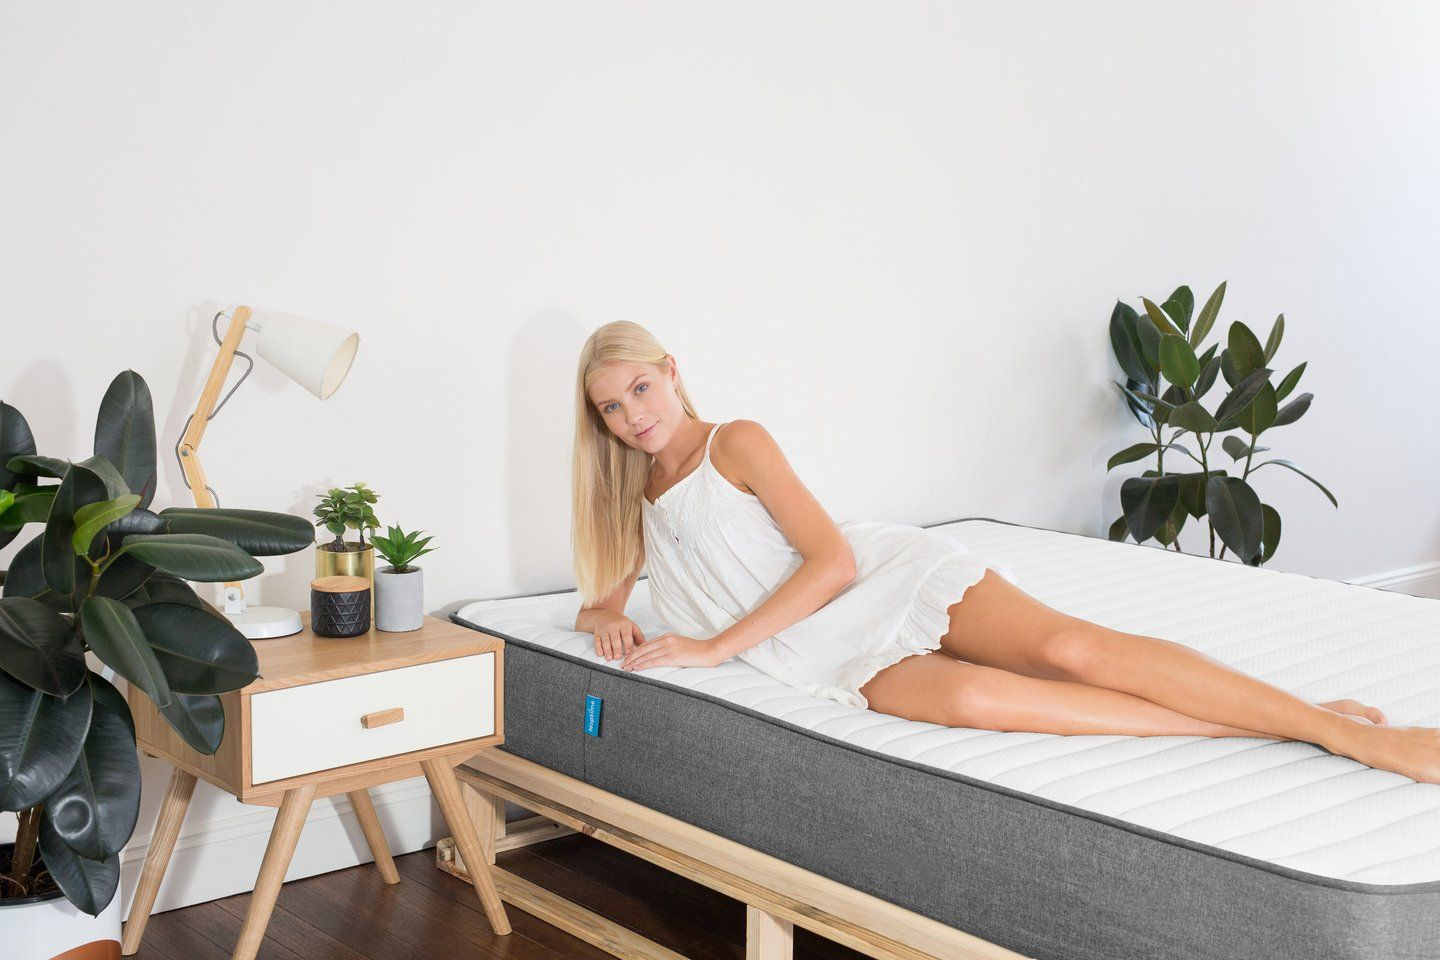 Memory Foam Bed Mattress Available For Single King Single Double Queen And King Size With 15 Year Warranty A Mattress Buying Best Mattress Foam Mattress Bed